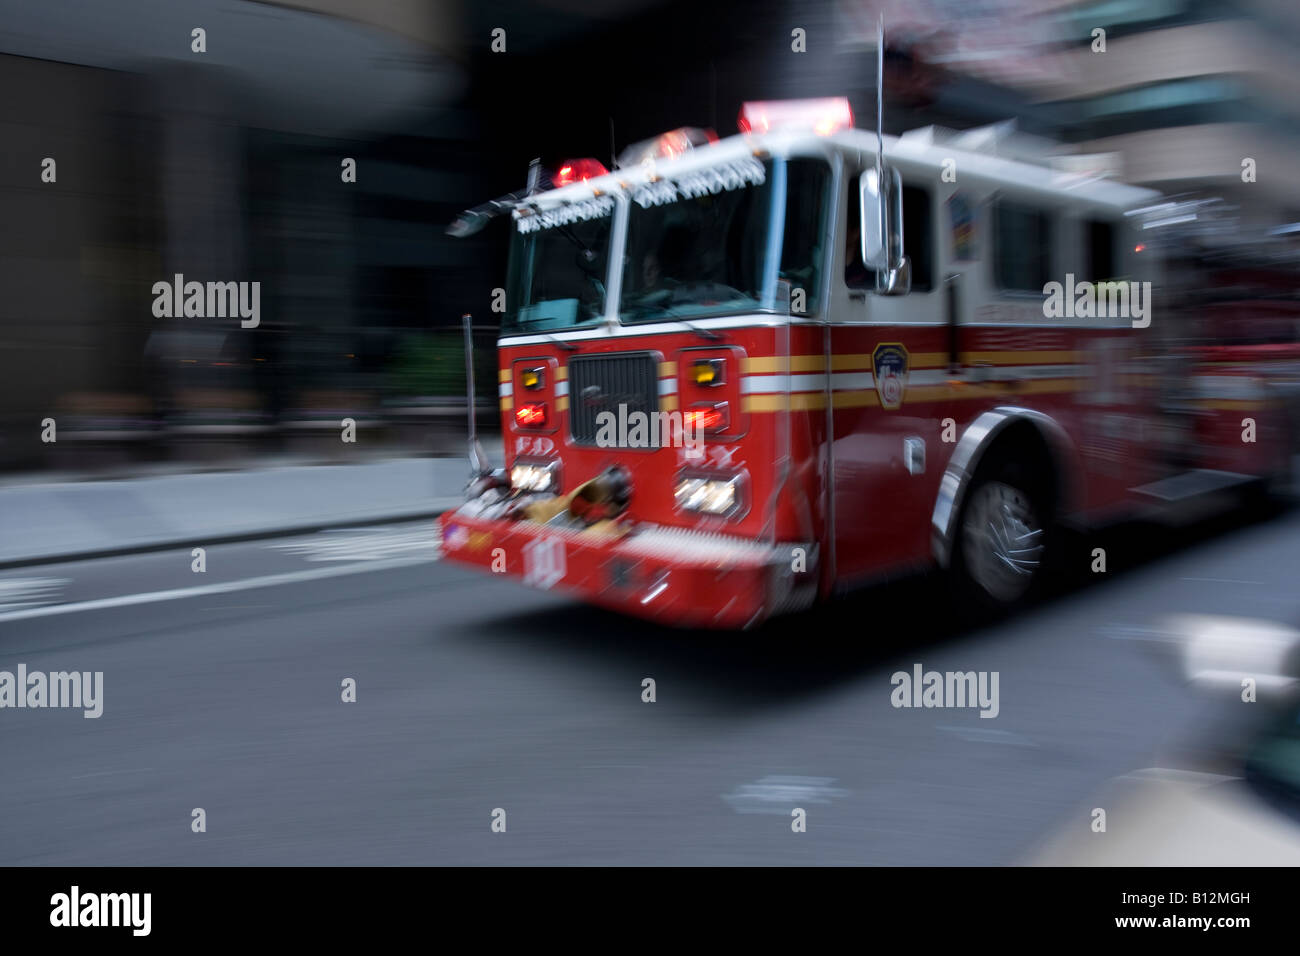 Nyc Fire Truck Stock Photos & Nyc Fire Truck Stock Images - Alamy